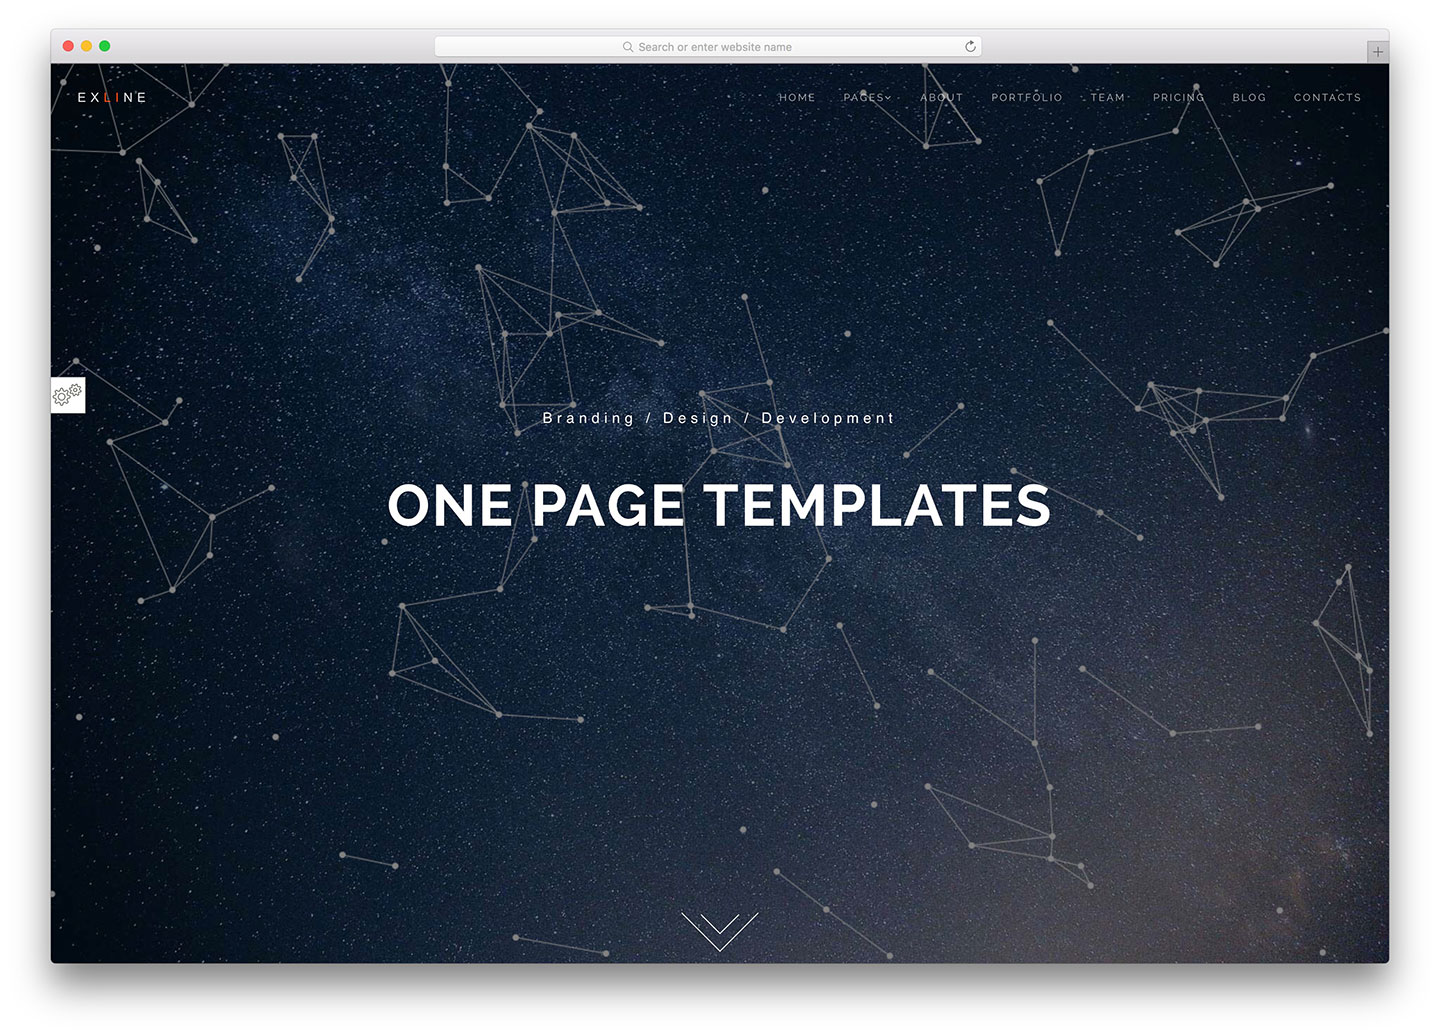 18 Best HTML5 One Page Website Templates 2018 - Colorlib